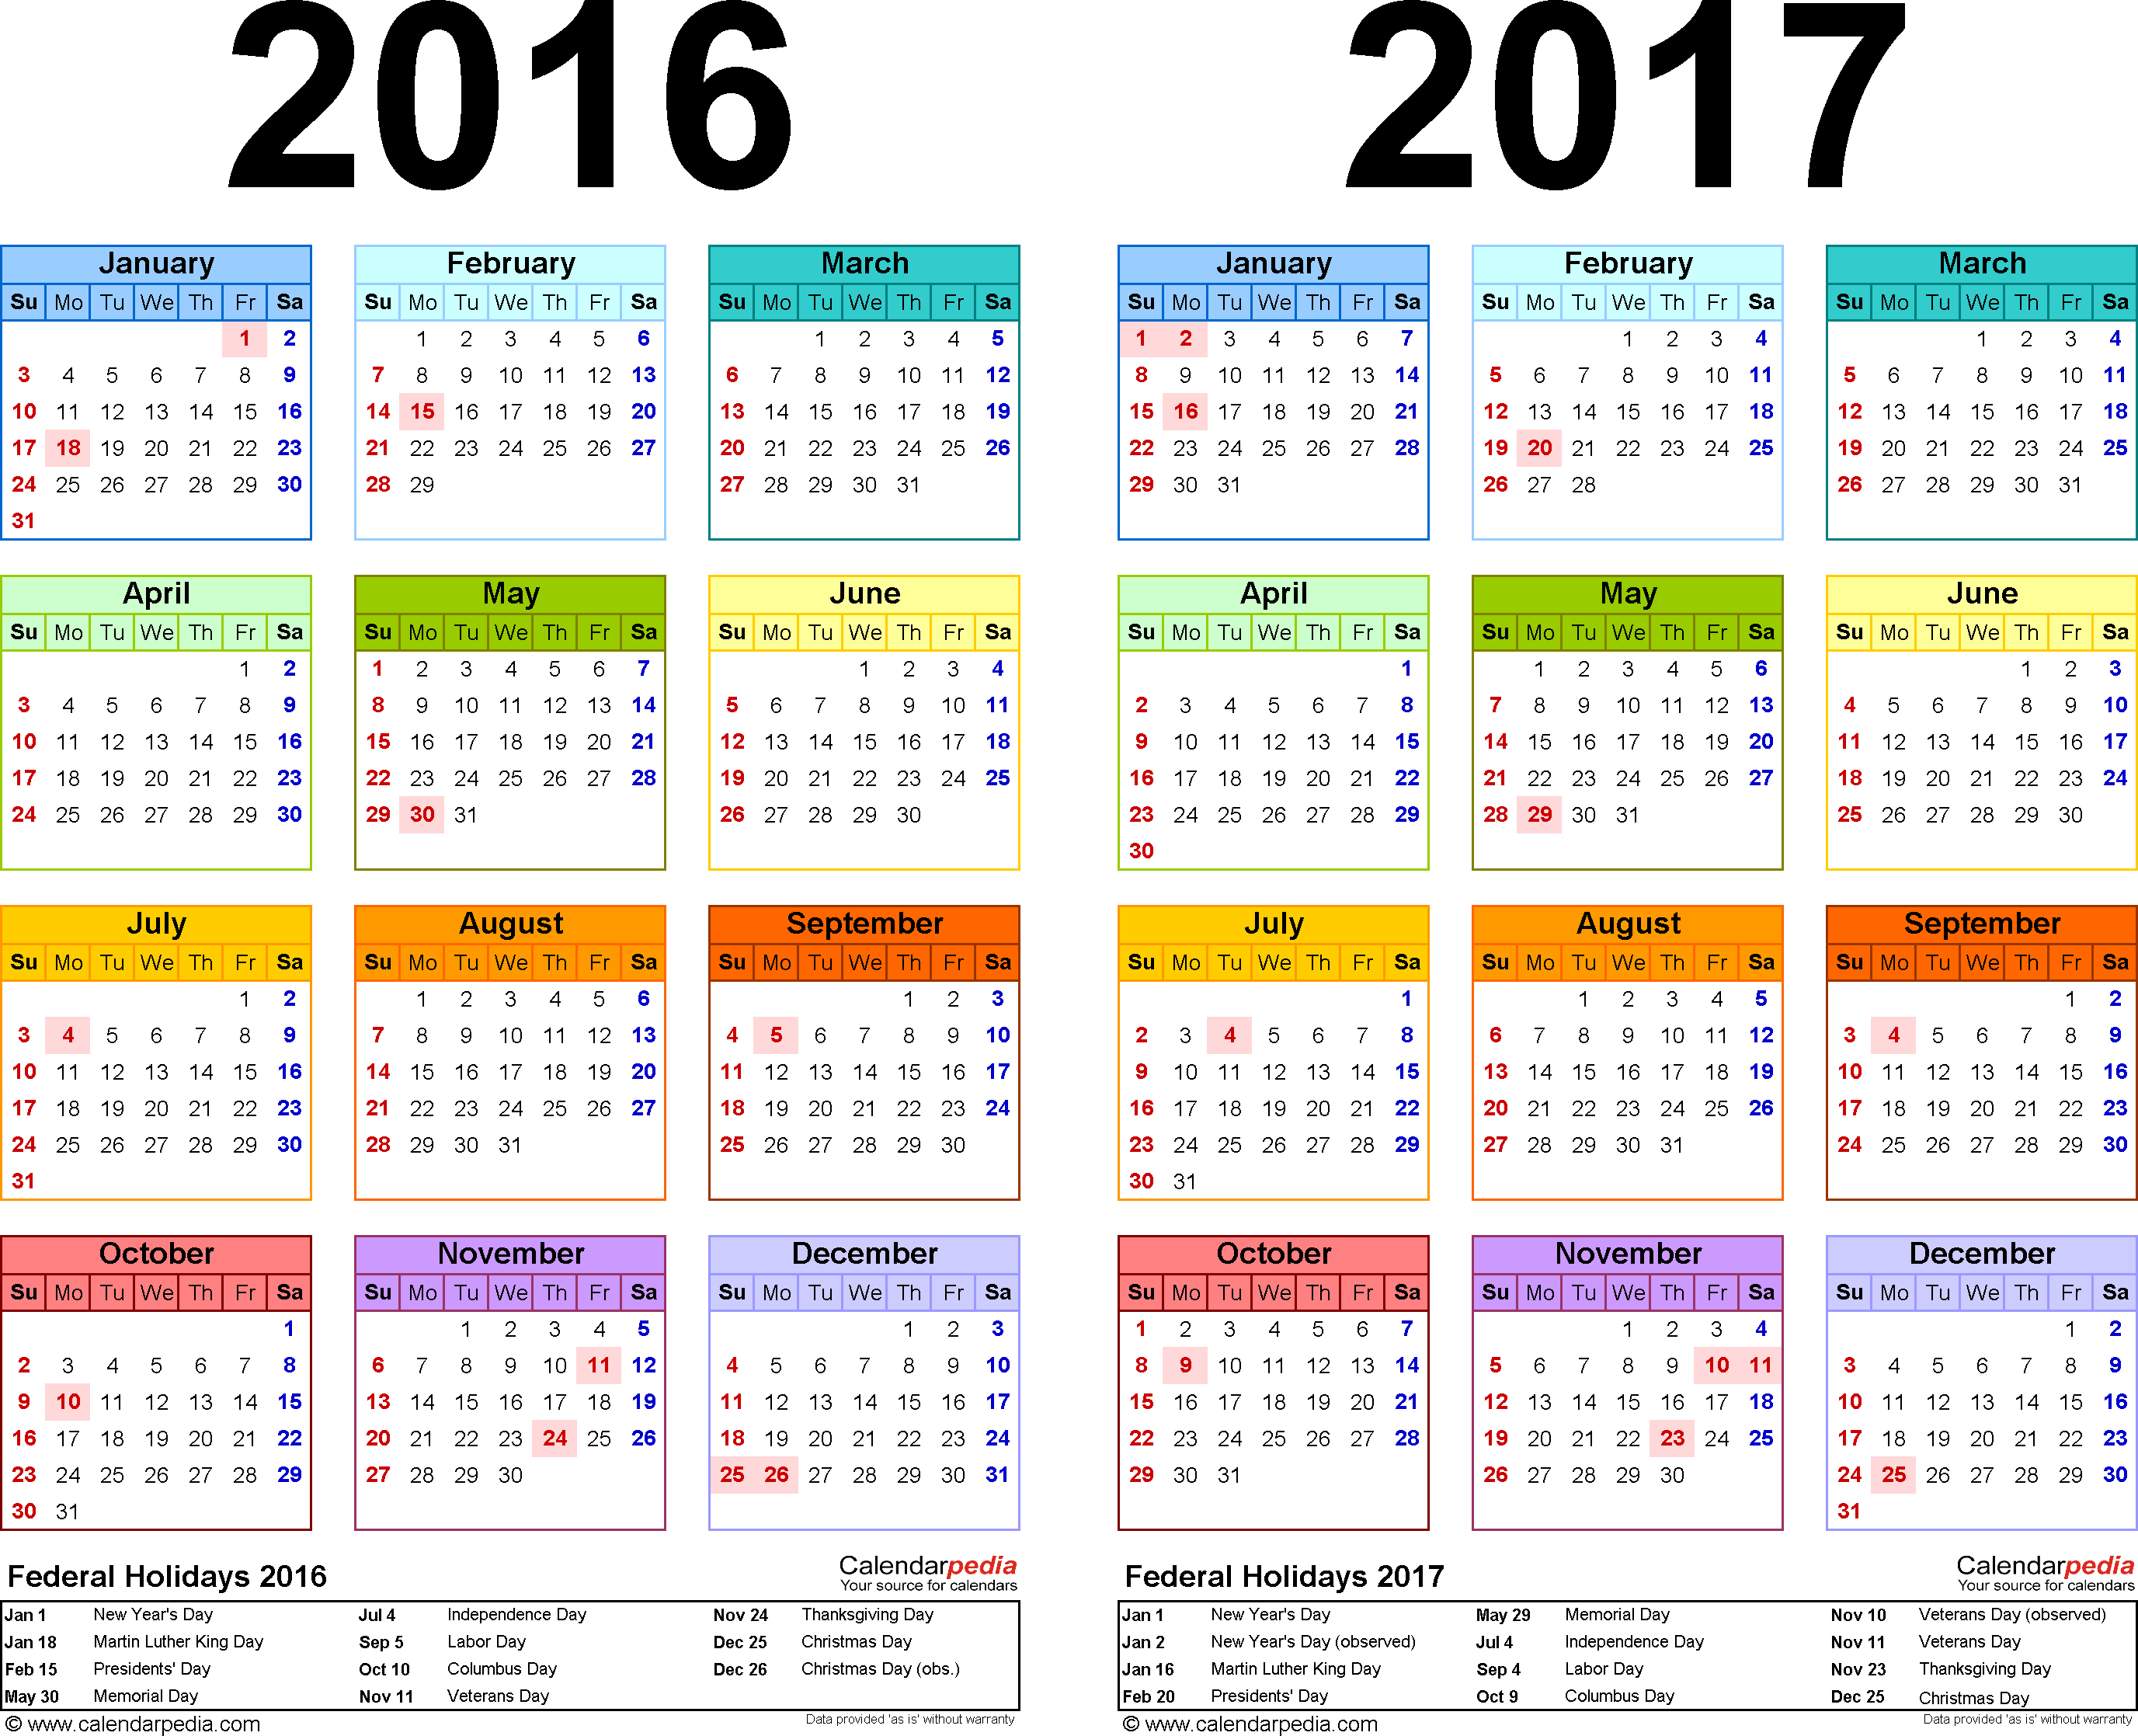 Yearly Calendar 2017 | Templates Free Printable with regard to 2017 School Calendar South Africa